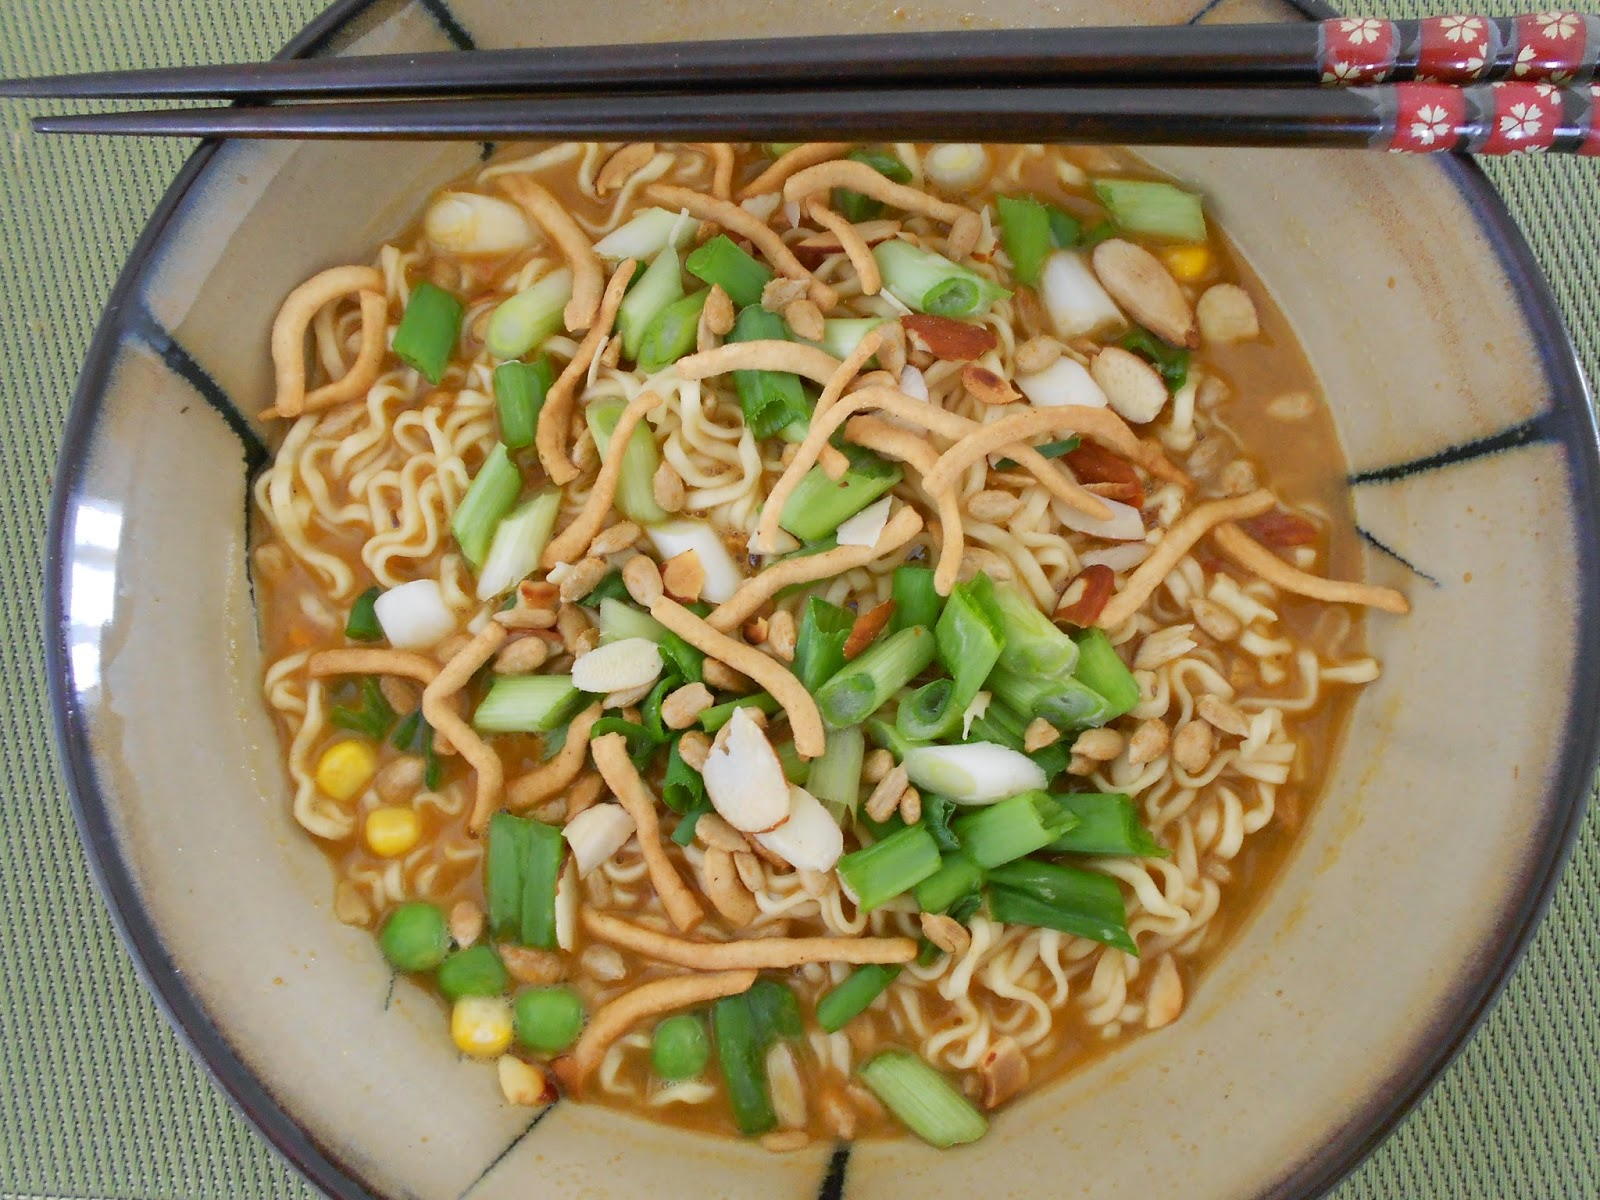 Jj s ramen noodle remake recipes - jj s ramen noodle remake recipe